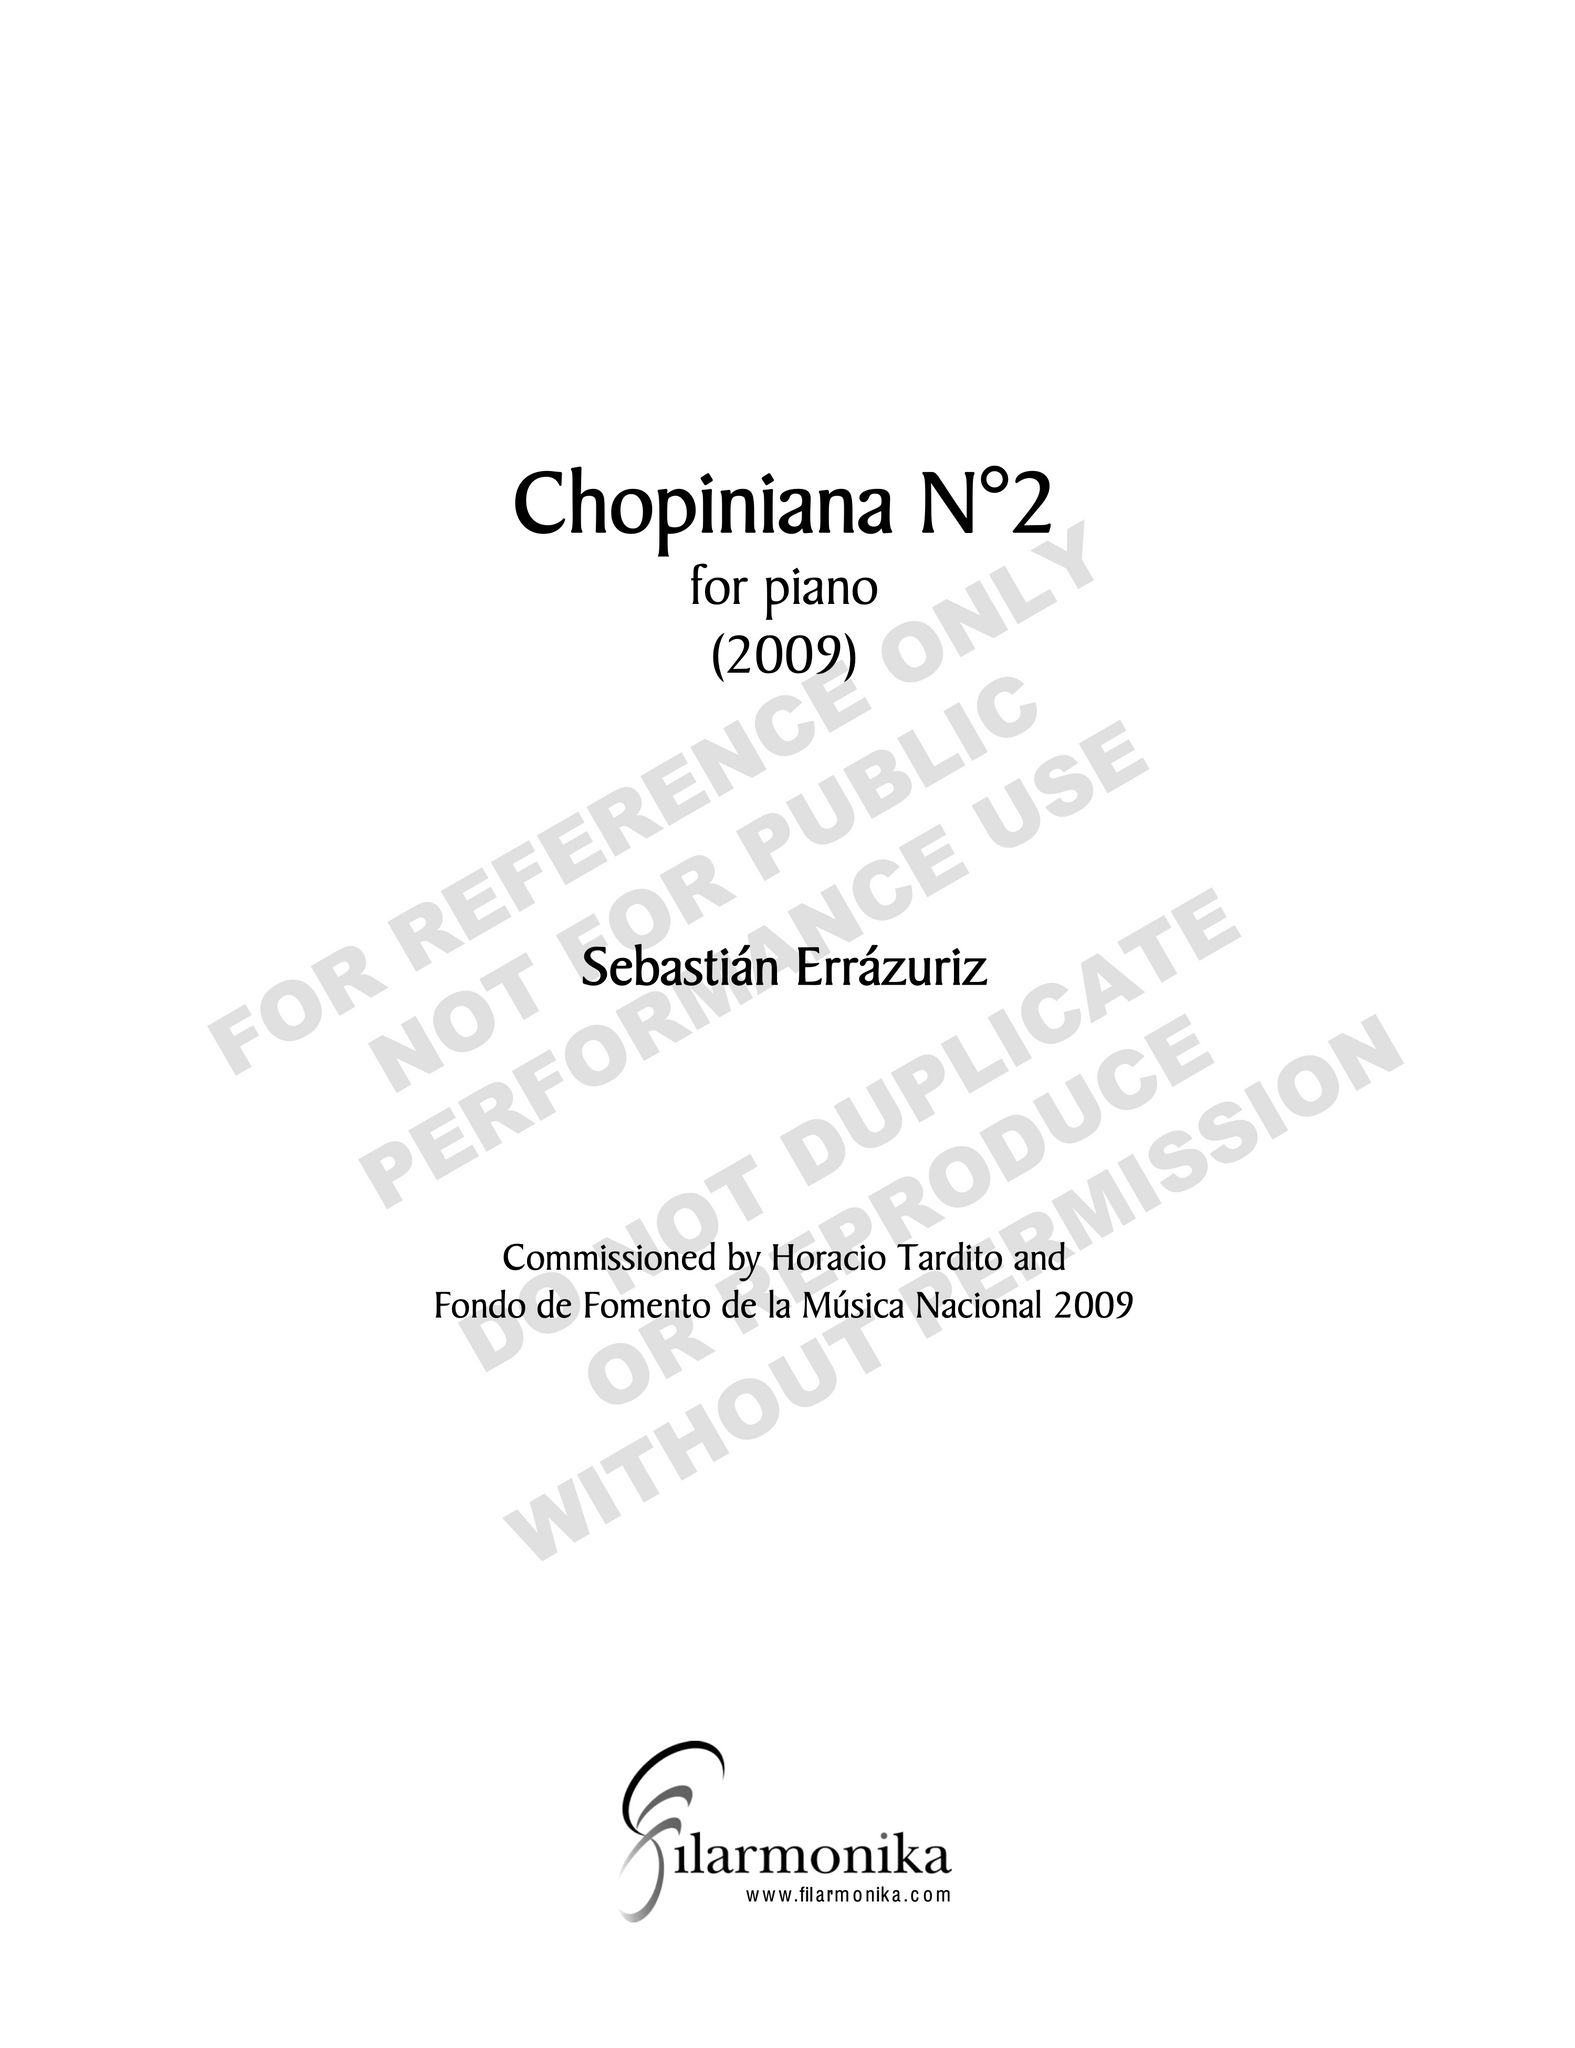 Chopiniana Nº 2, for solo piano